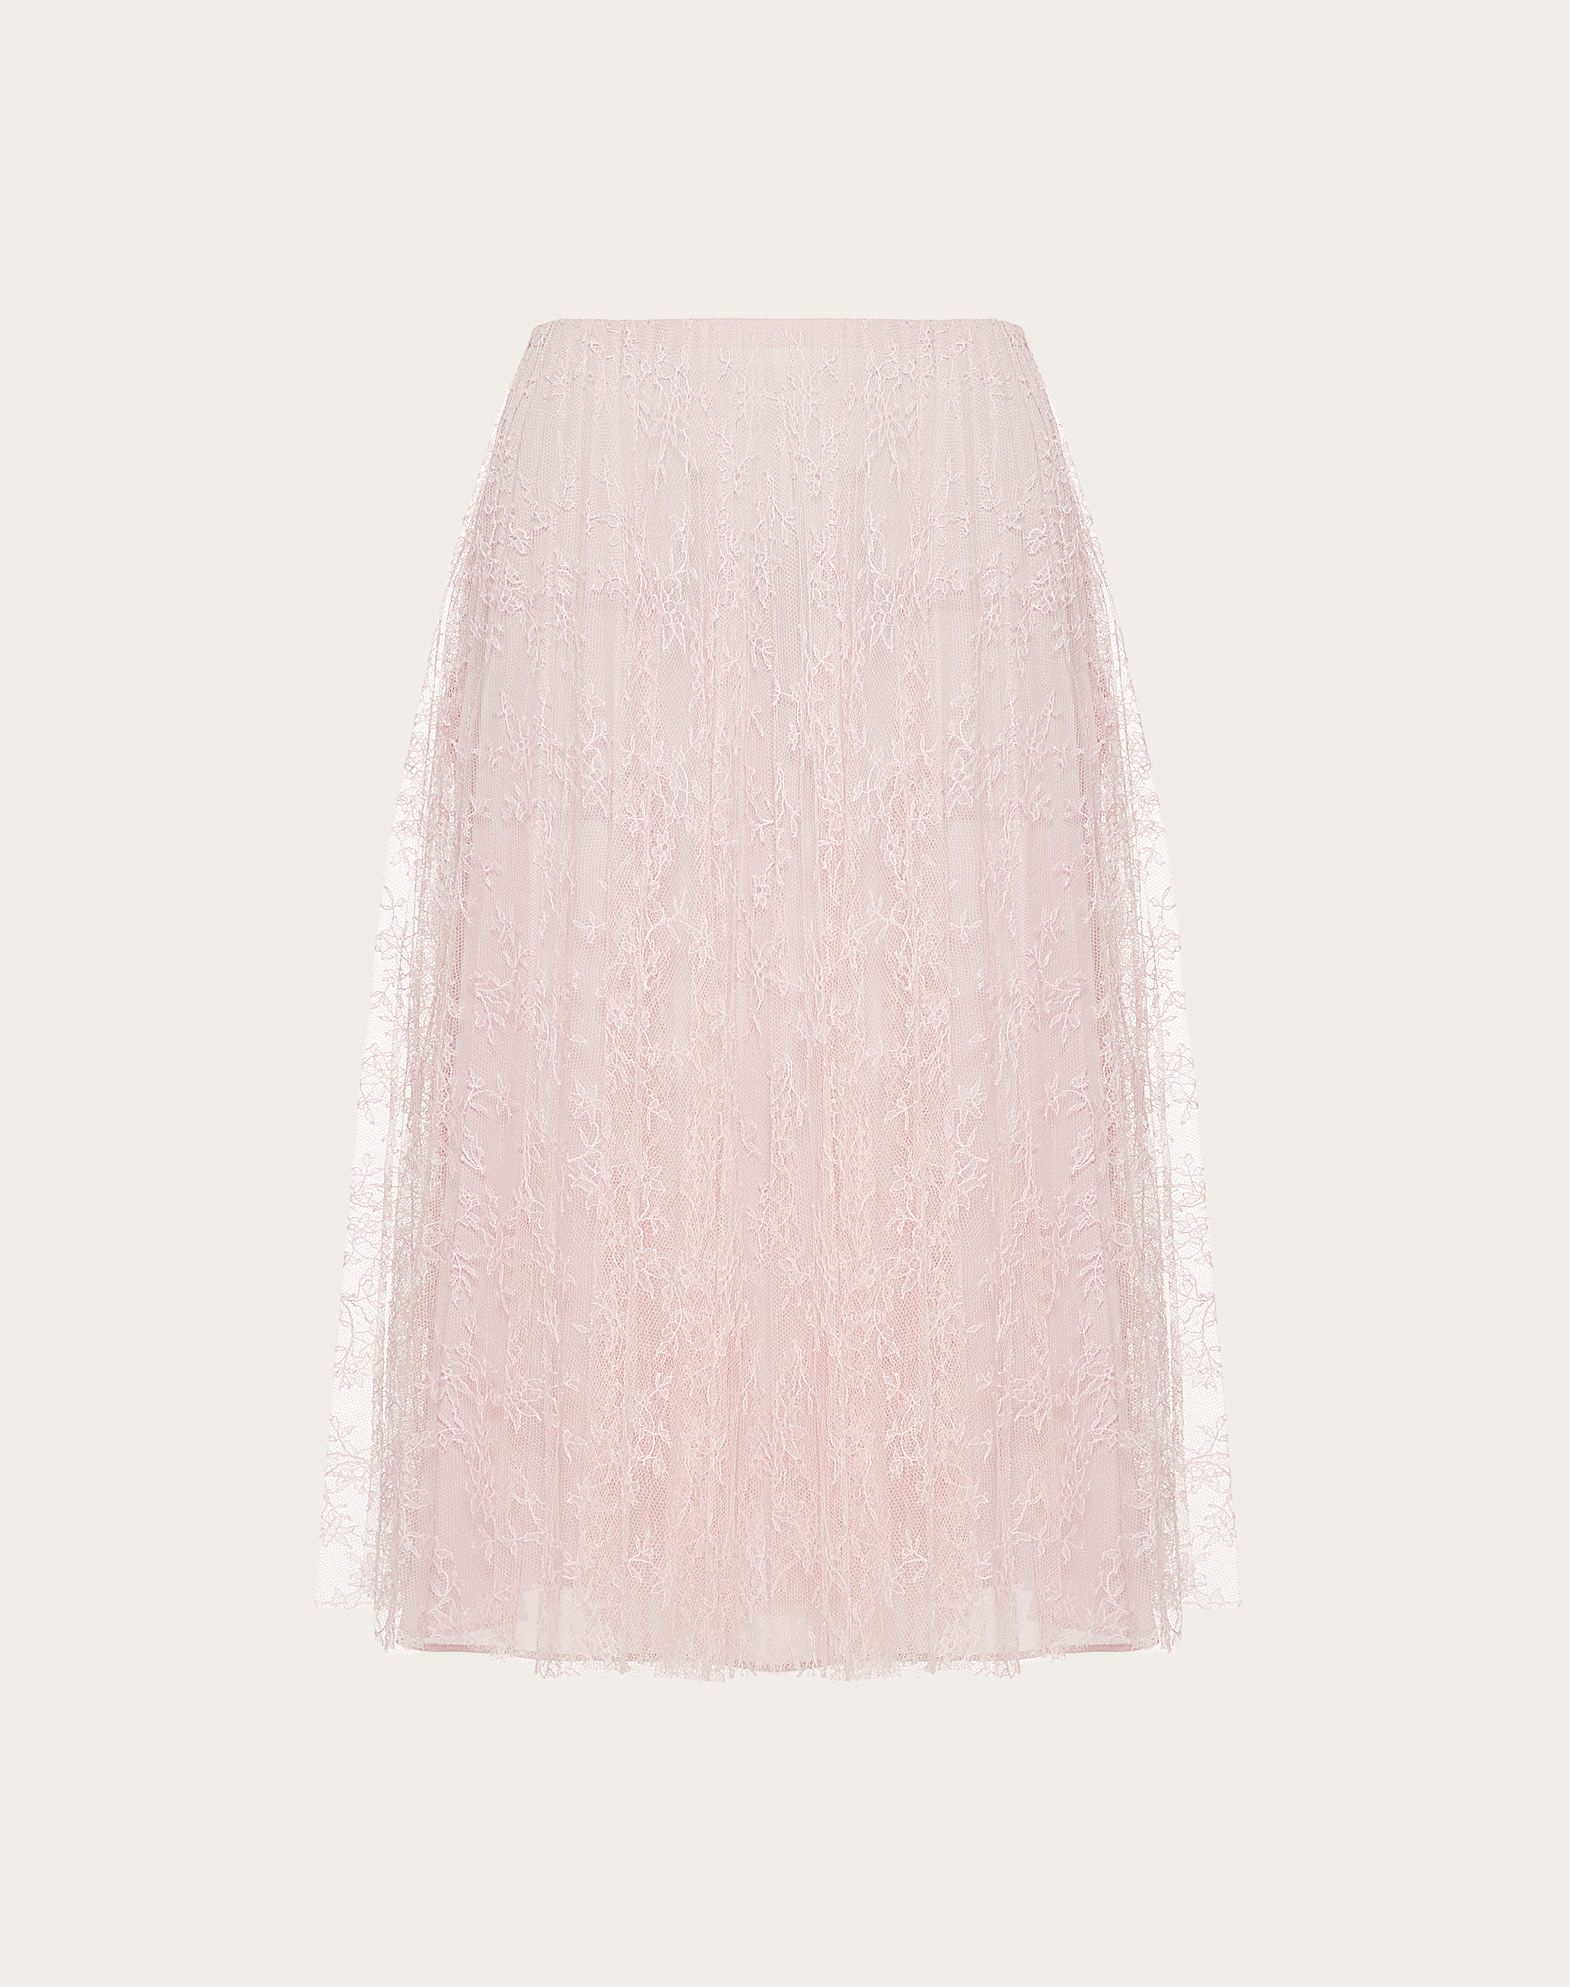 PLEATED CHANTILLY LACE SKIRT